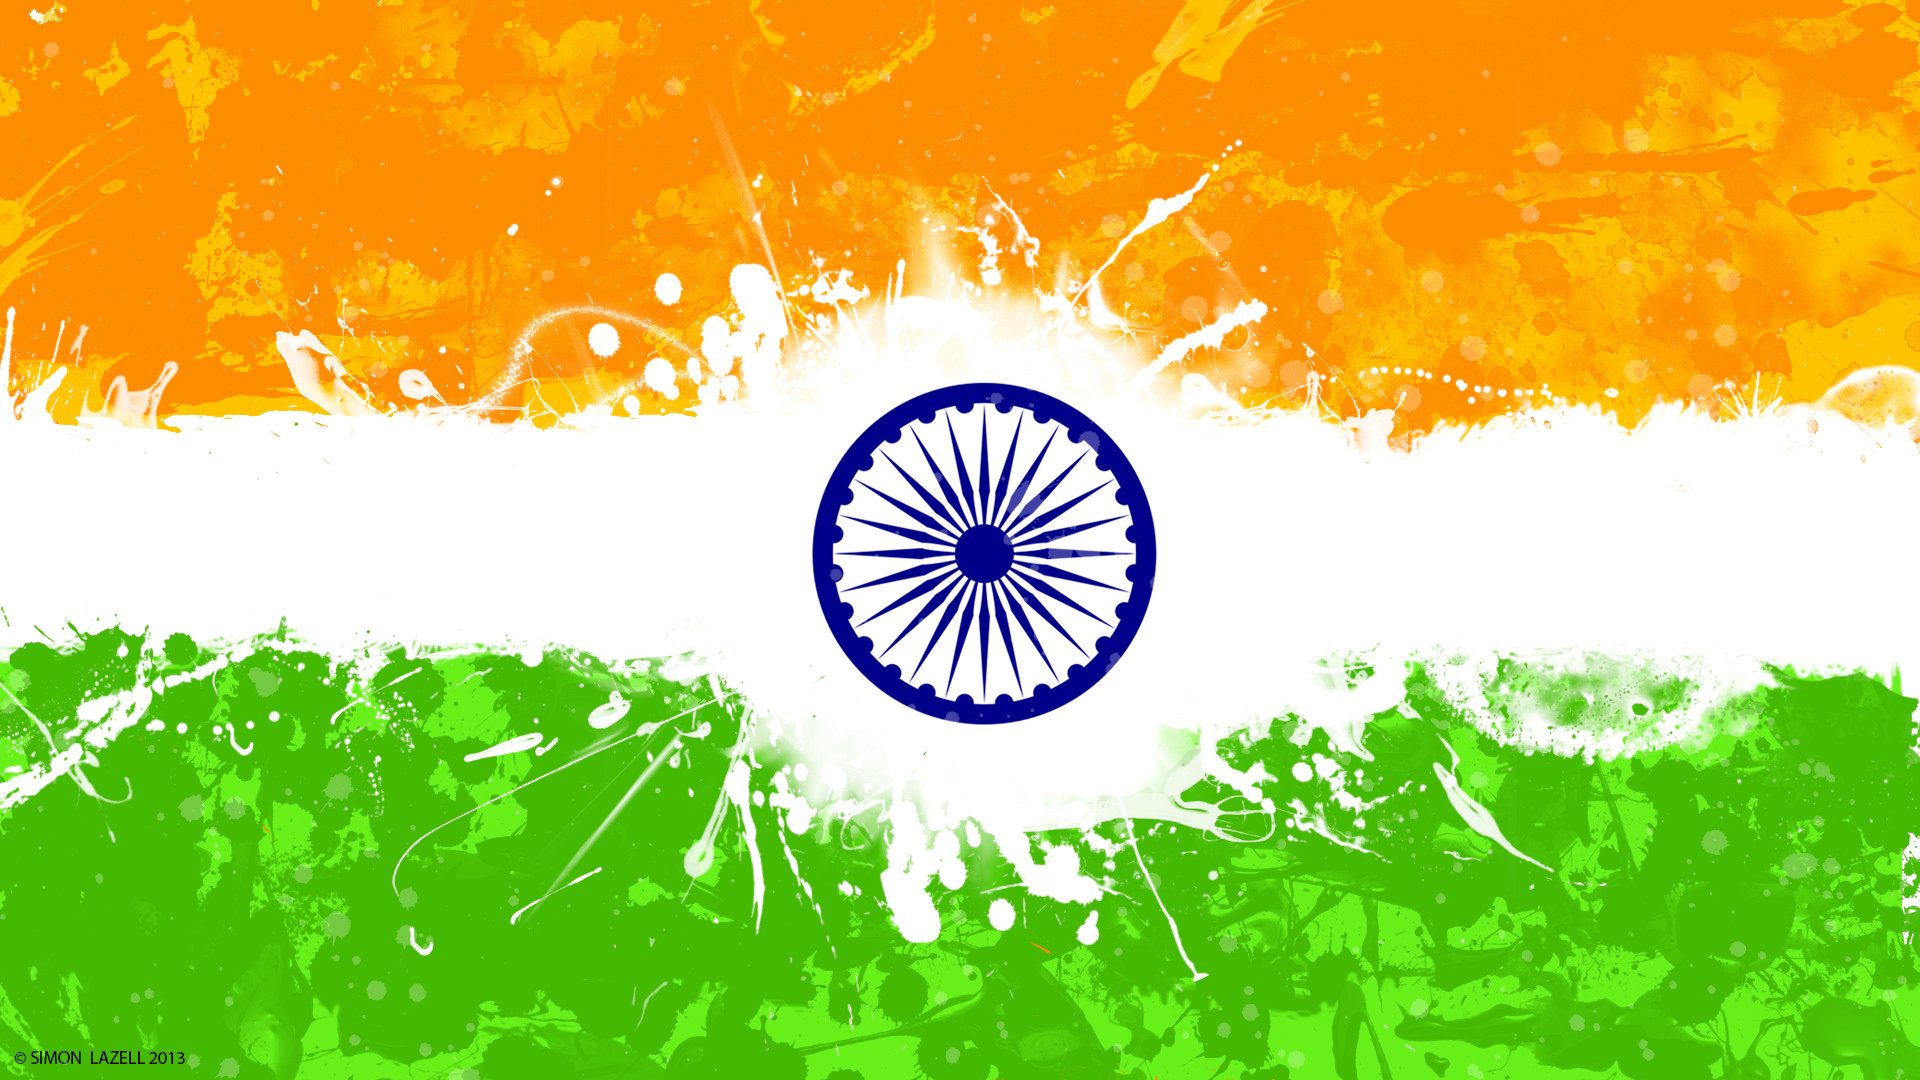 Indian flag hd wallpaper wallpapersafari - Indian flag hd wallpaper for android ...